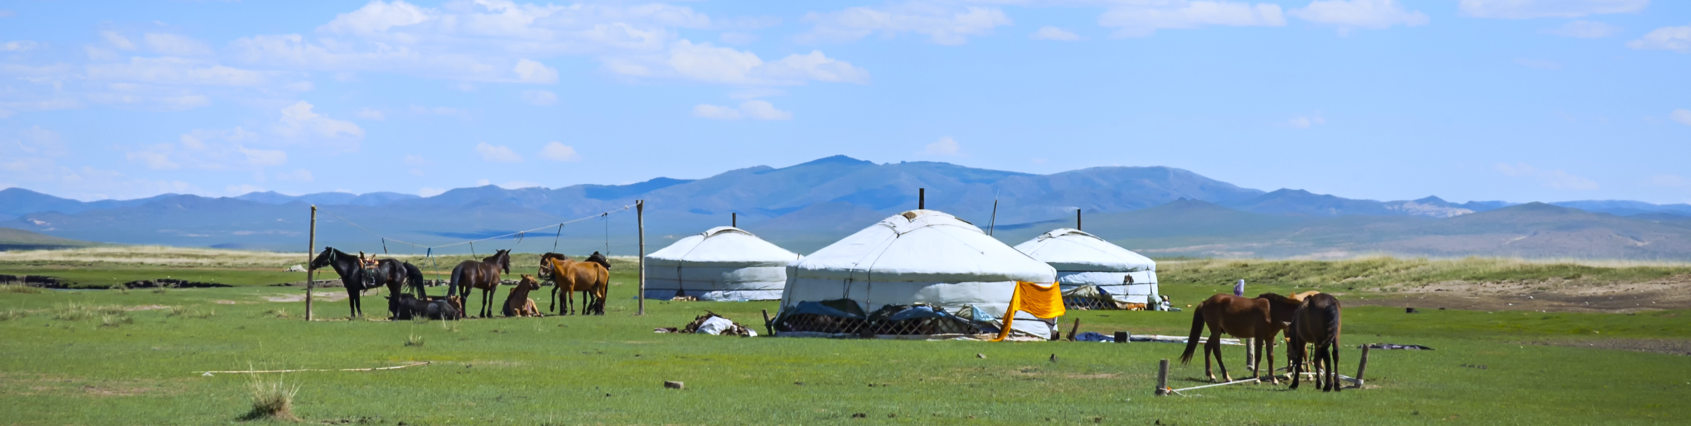 mongolia nature nomad countryside